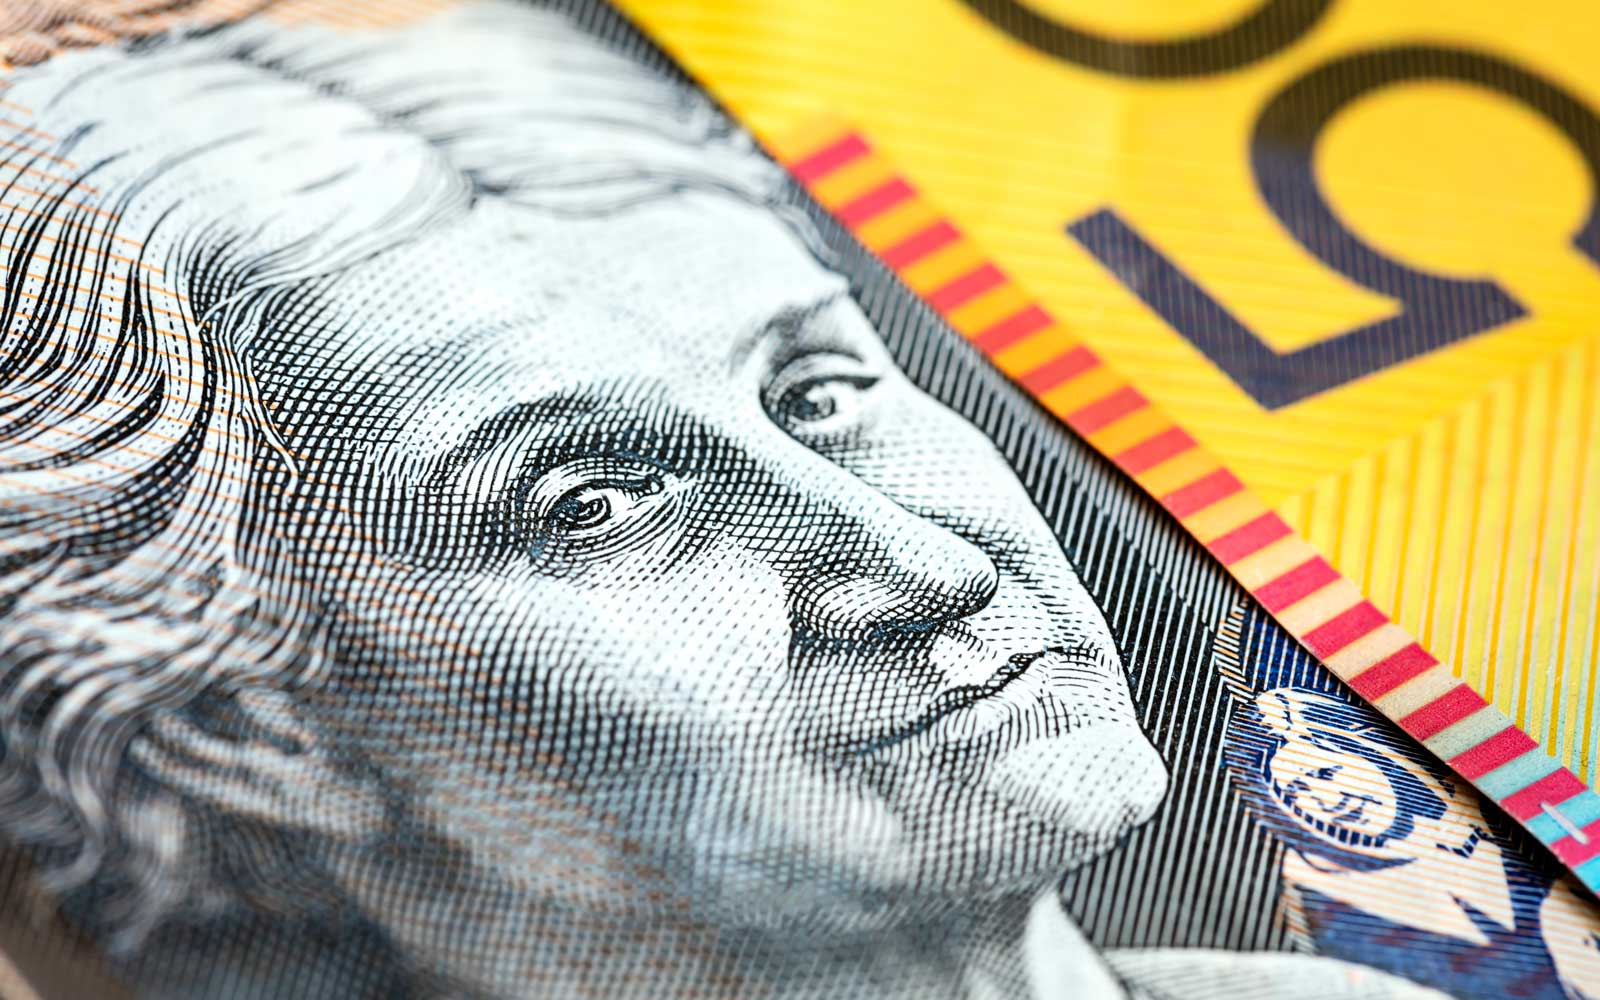 Australia Just Printed $2.3 Billion Worth of Currency With an Embarrassing Typo